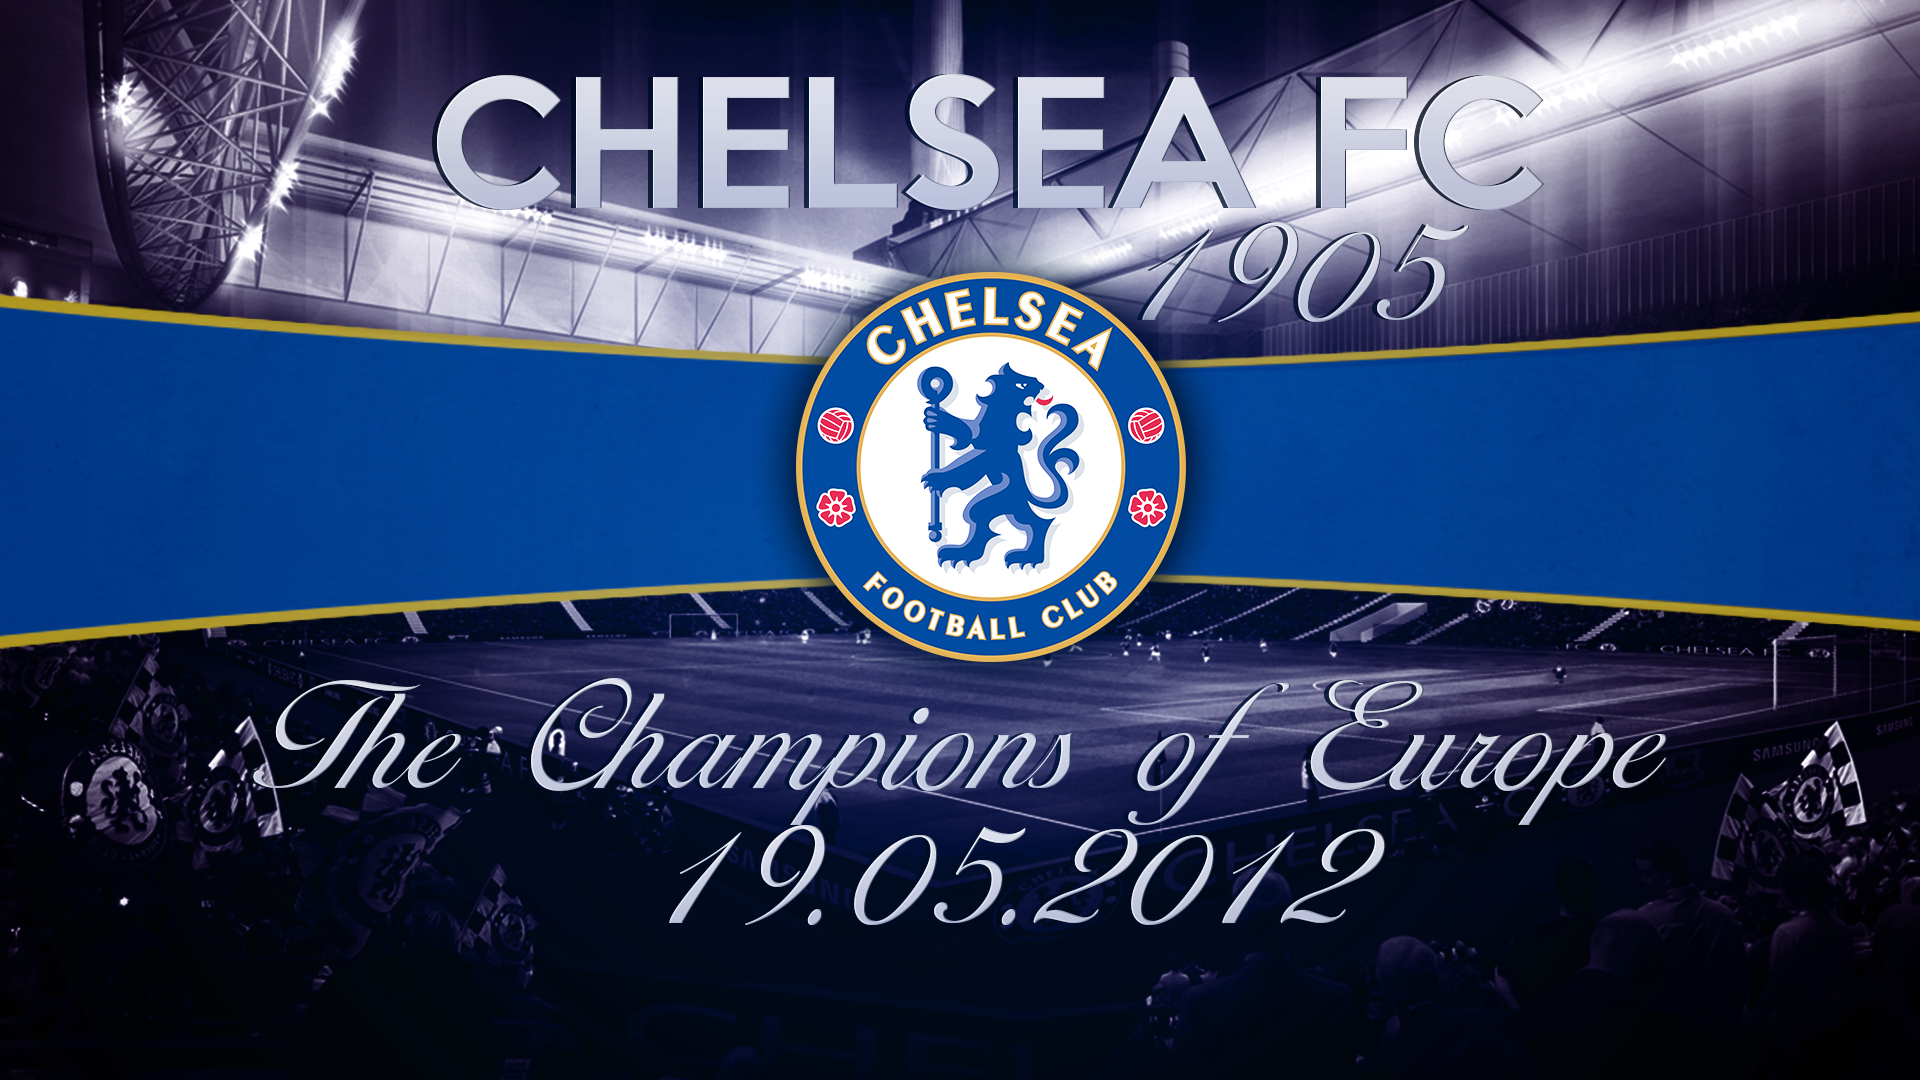 This is why it is written in the stars a sacred year and date for jax macdonald chelsea fc wallpaper for mac computers 1920 x 1080 px voltagebd